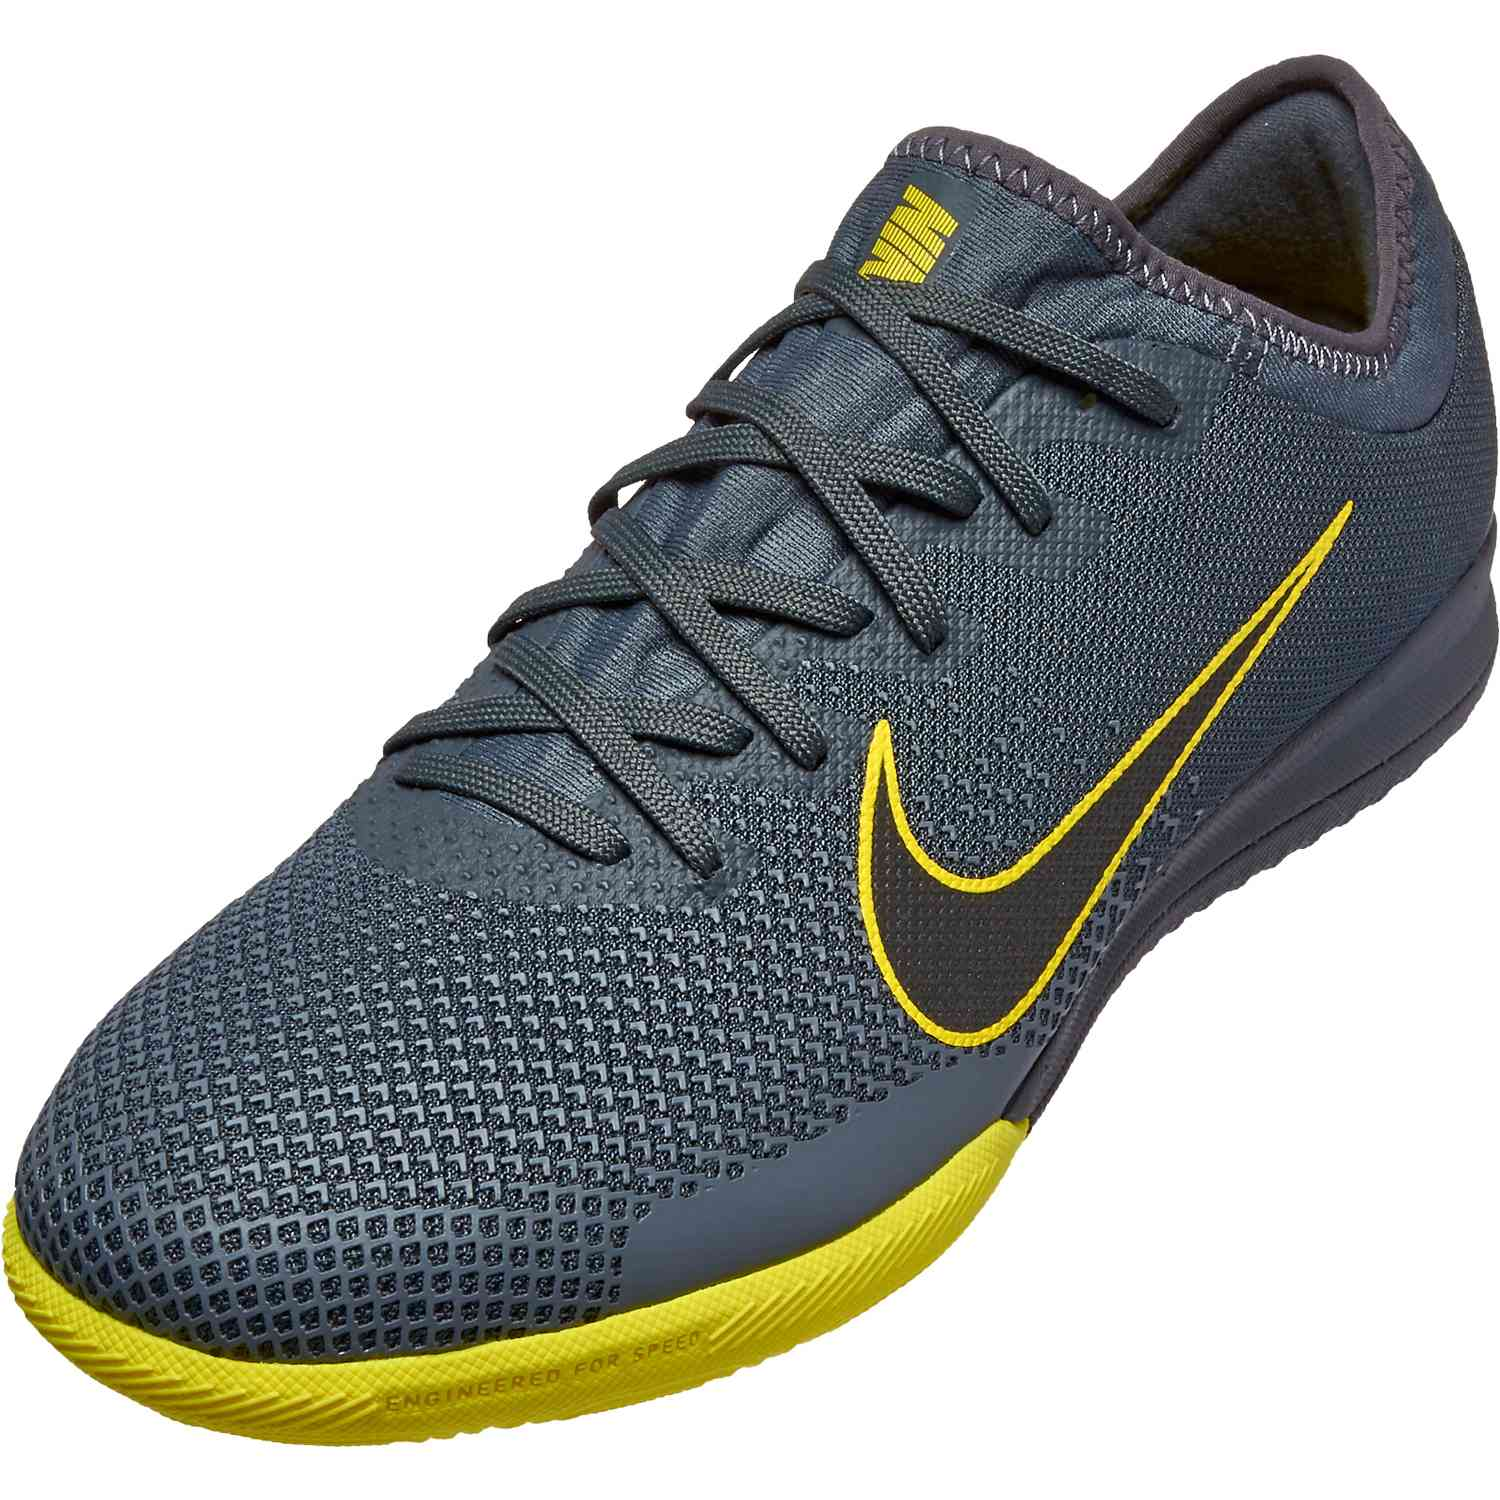 c9c2d9258ee Nike Mercurial VaporX 12 Pro IC - Anthracite - Soccer Master